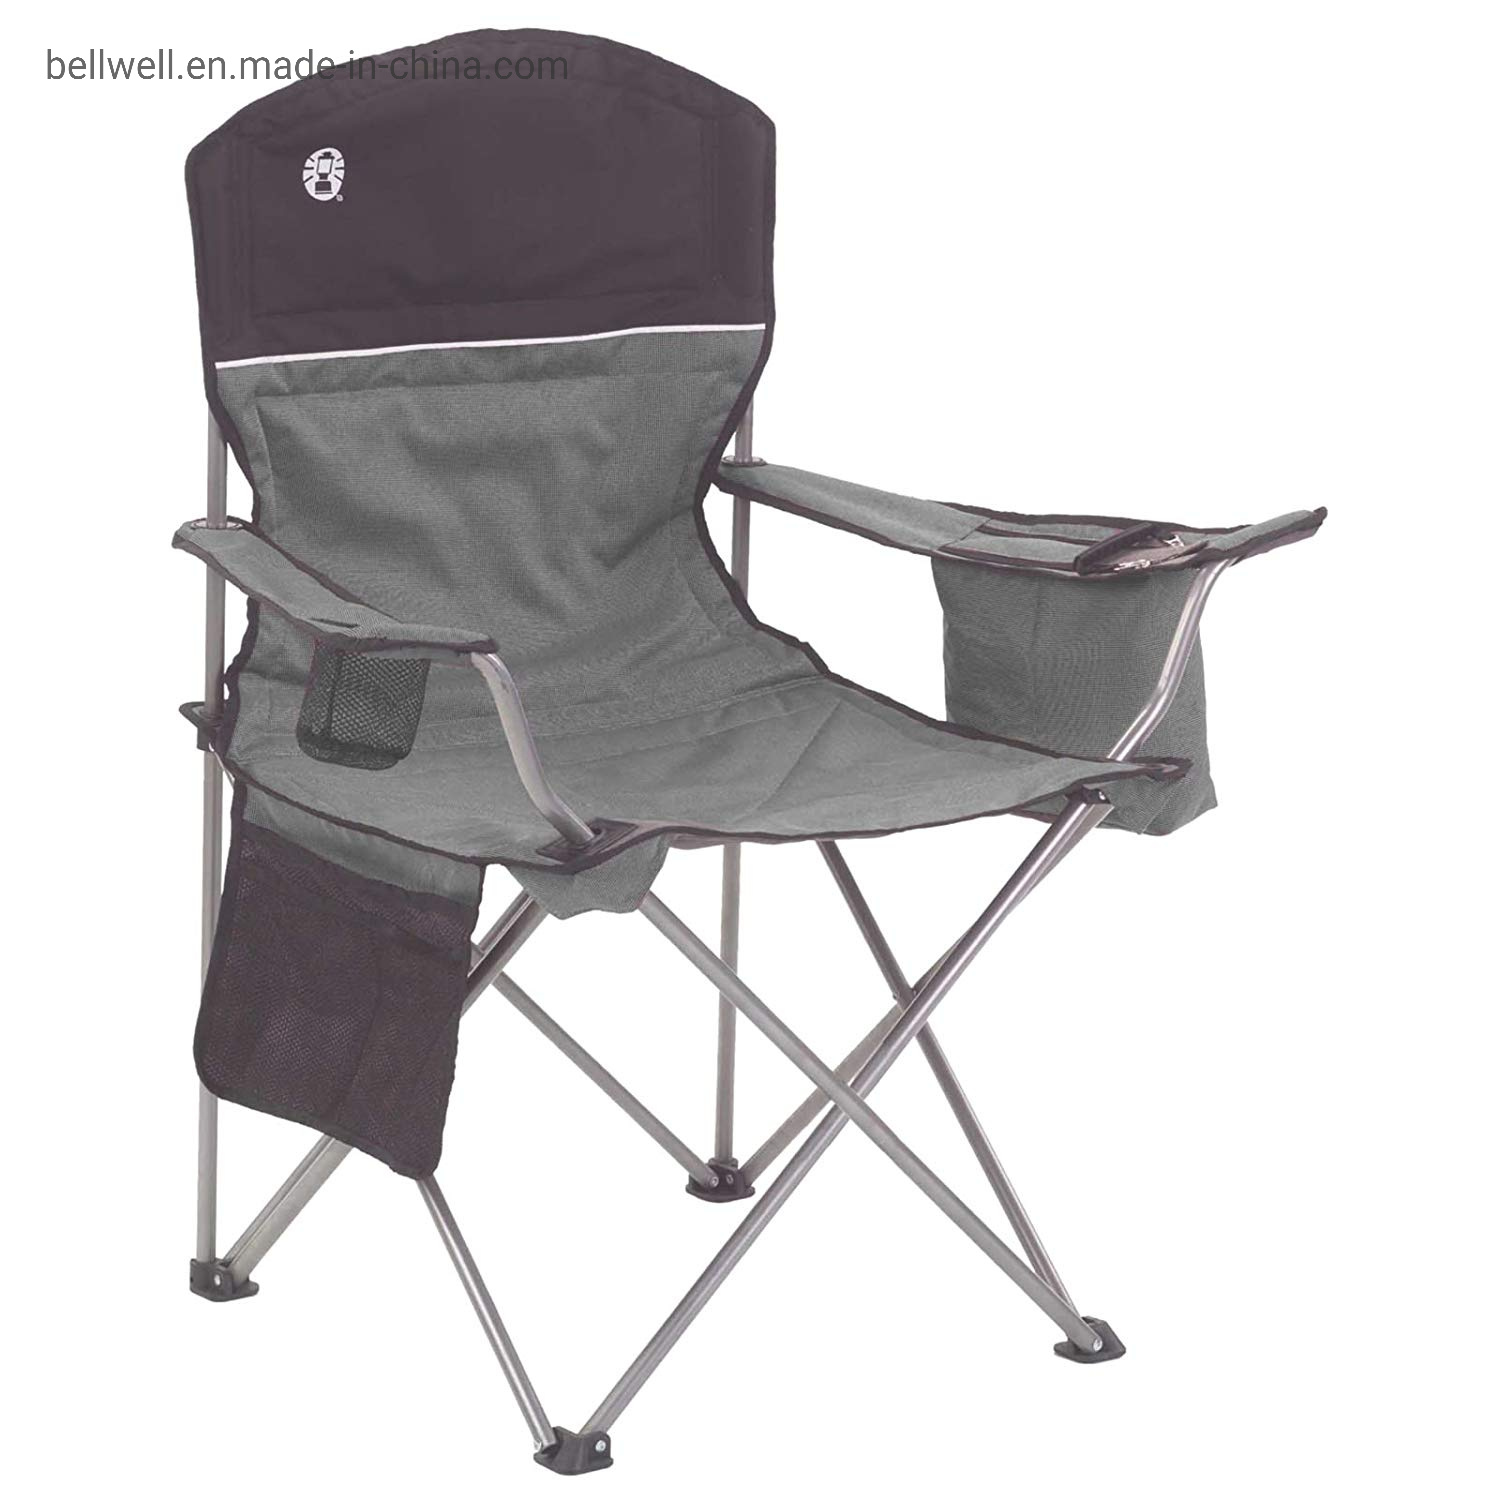 Hot Item Oversized Mesh Back Camping Folding Chair Heavy Duty Support